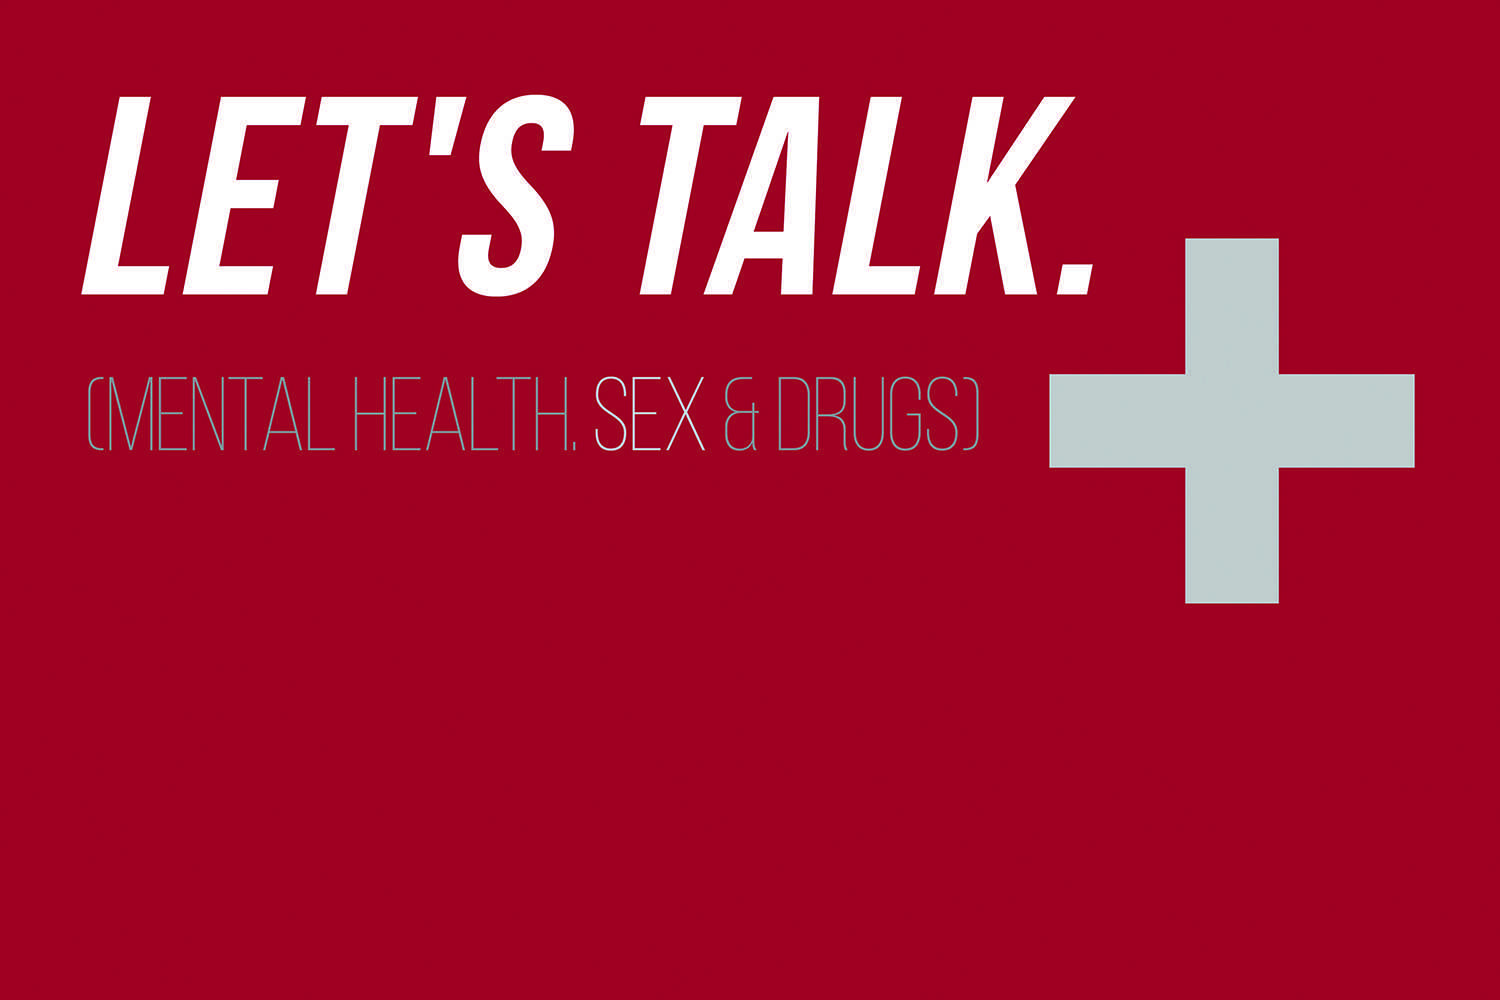 Lets talk about sex and health-4006